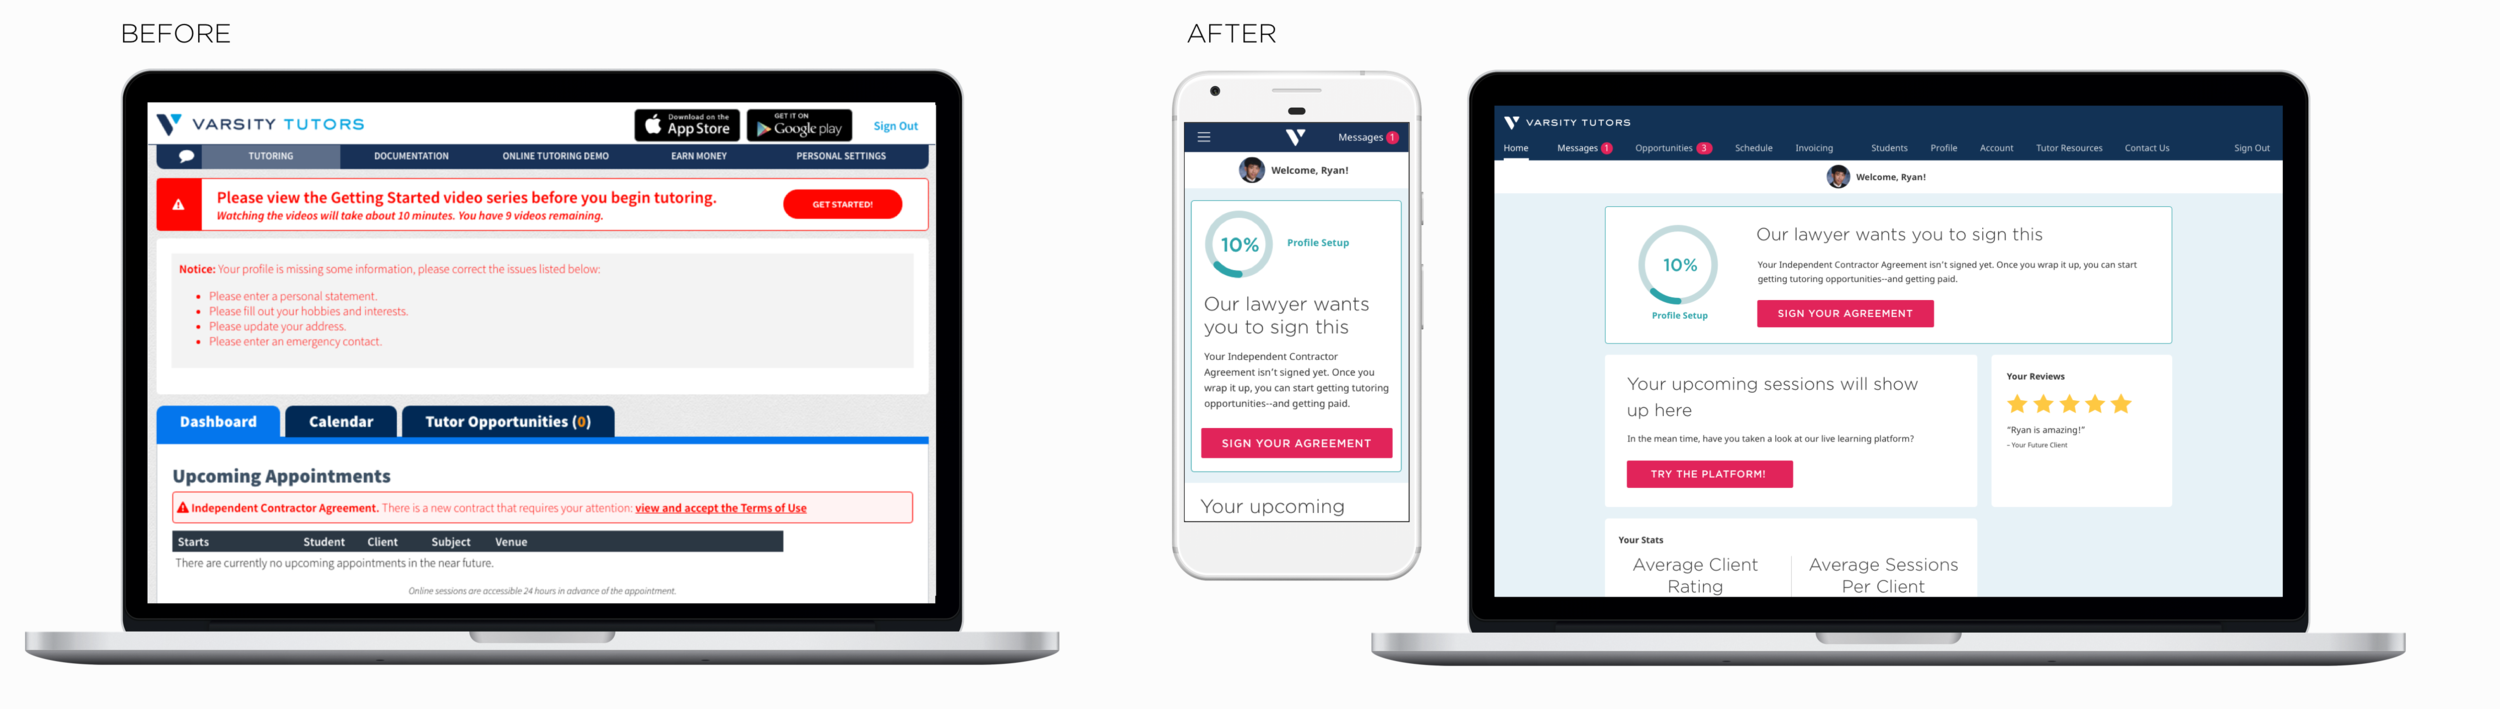 First Time Tutor Visit: (Before) Non-responsive web view and (After) Responsive web view in new design language